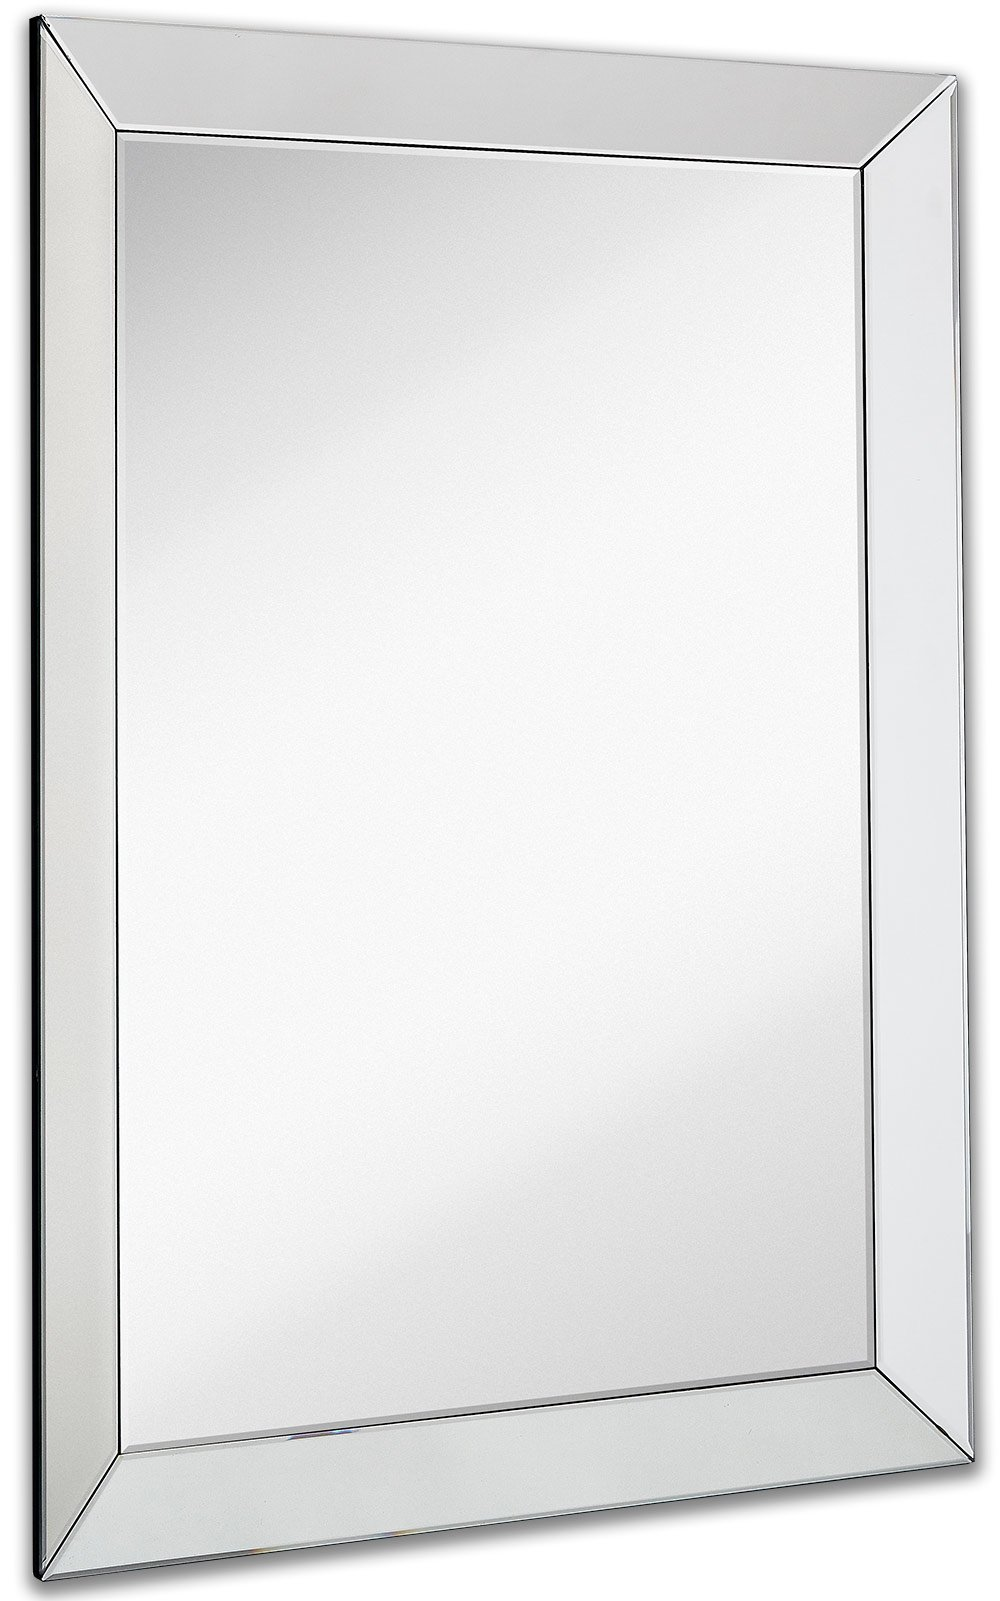 "Large Framed Wall Mirror with 3 Inch Angled Beveled Mirror Frame | Premium Silver Backed Glass Panel Vanity, Bedroom, or Bathroom | Mirrored Rectangle Hangs Horizontal or Vertical (30"" x 40"")"